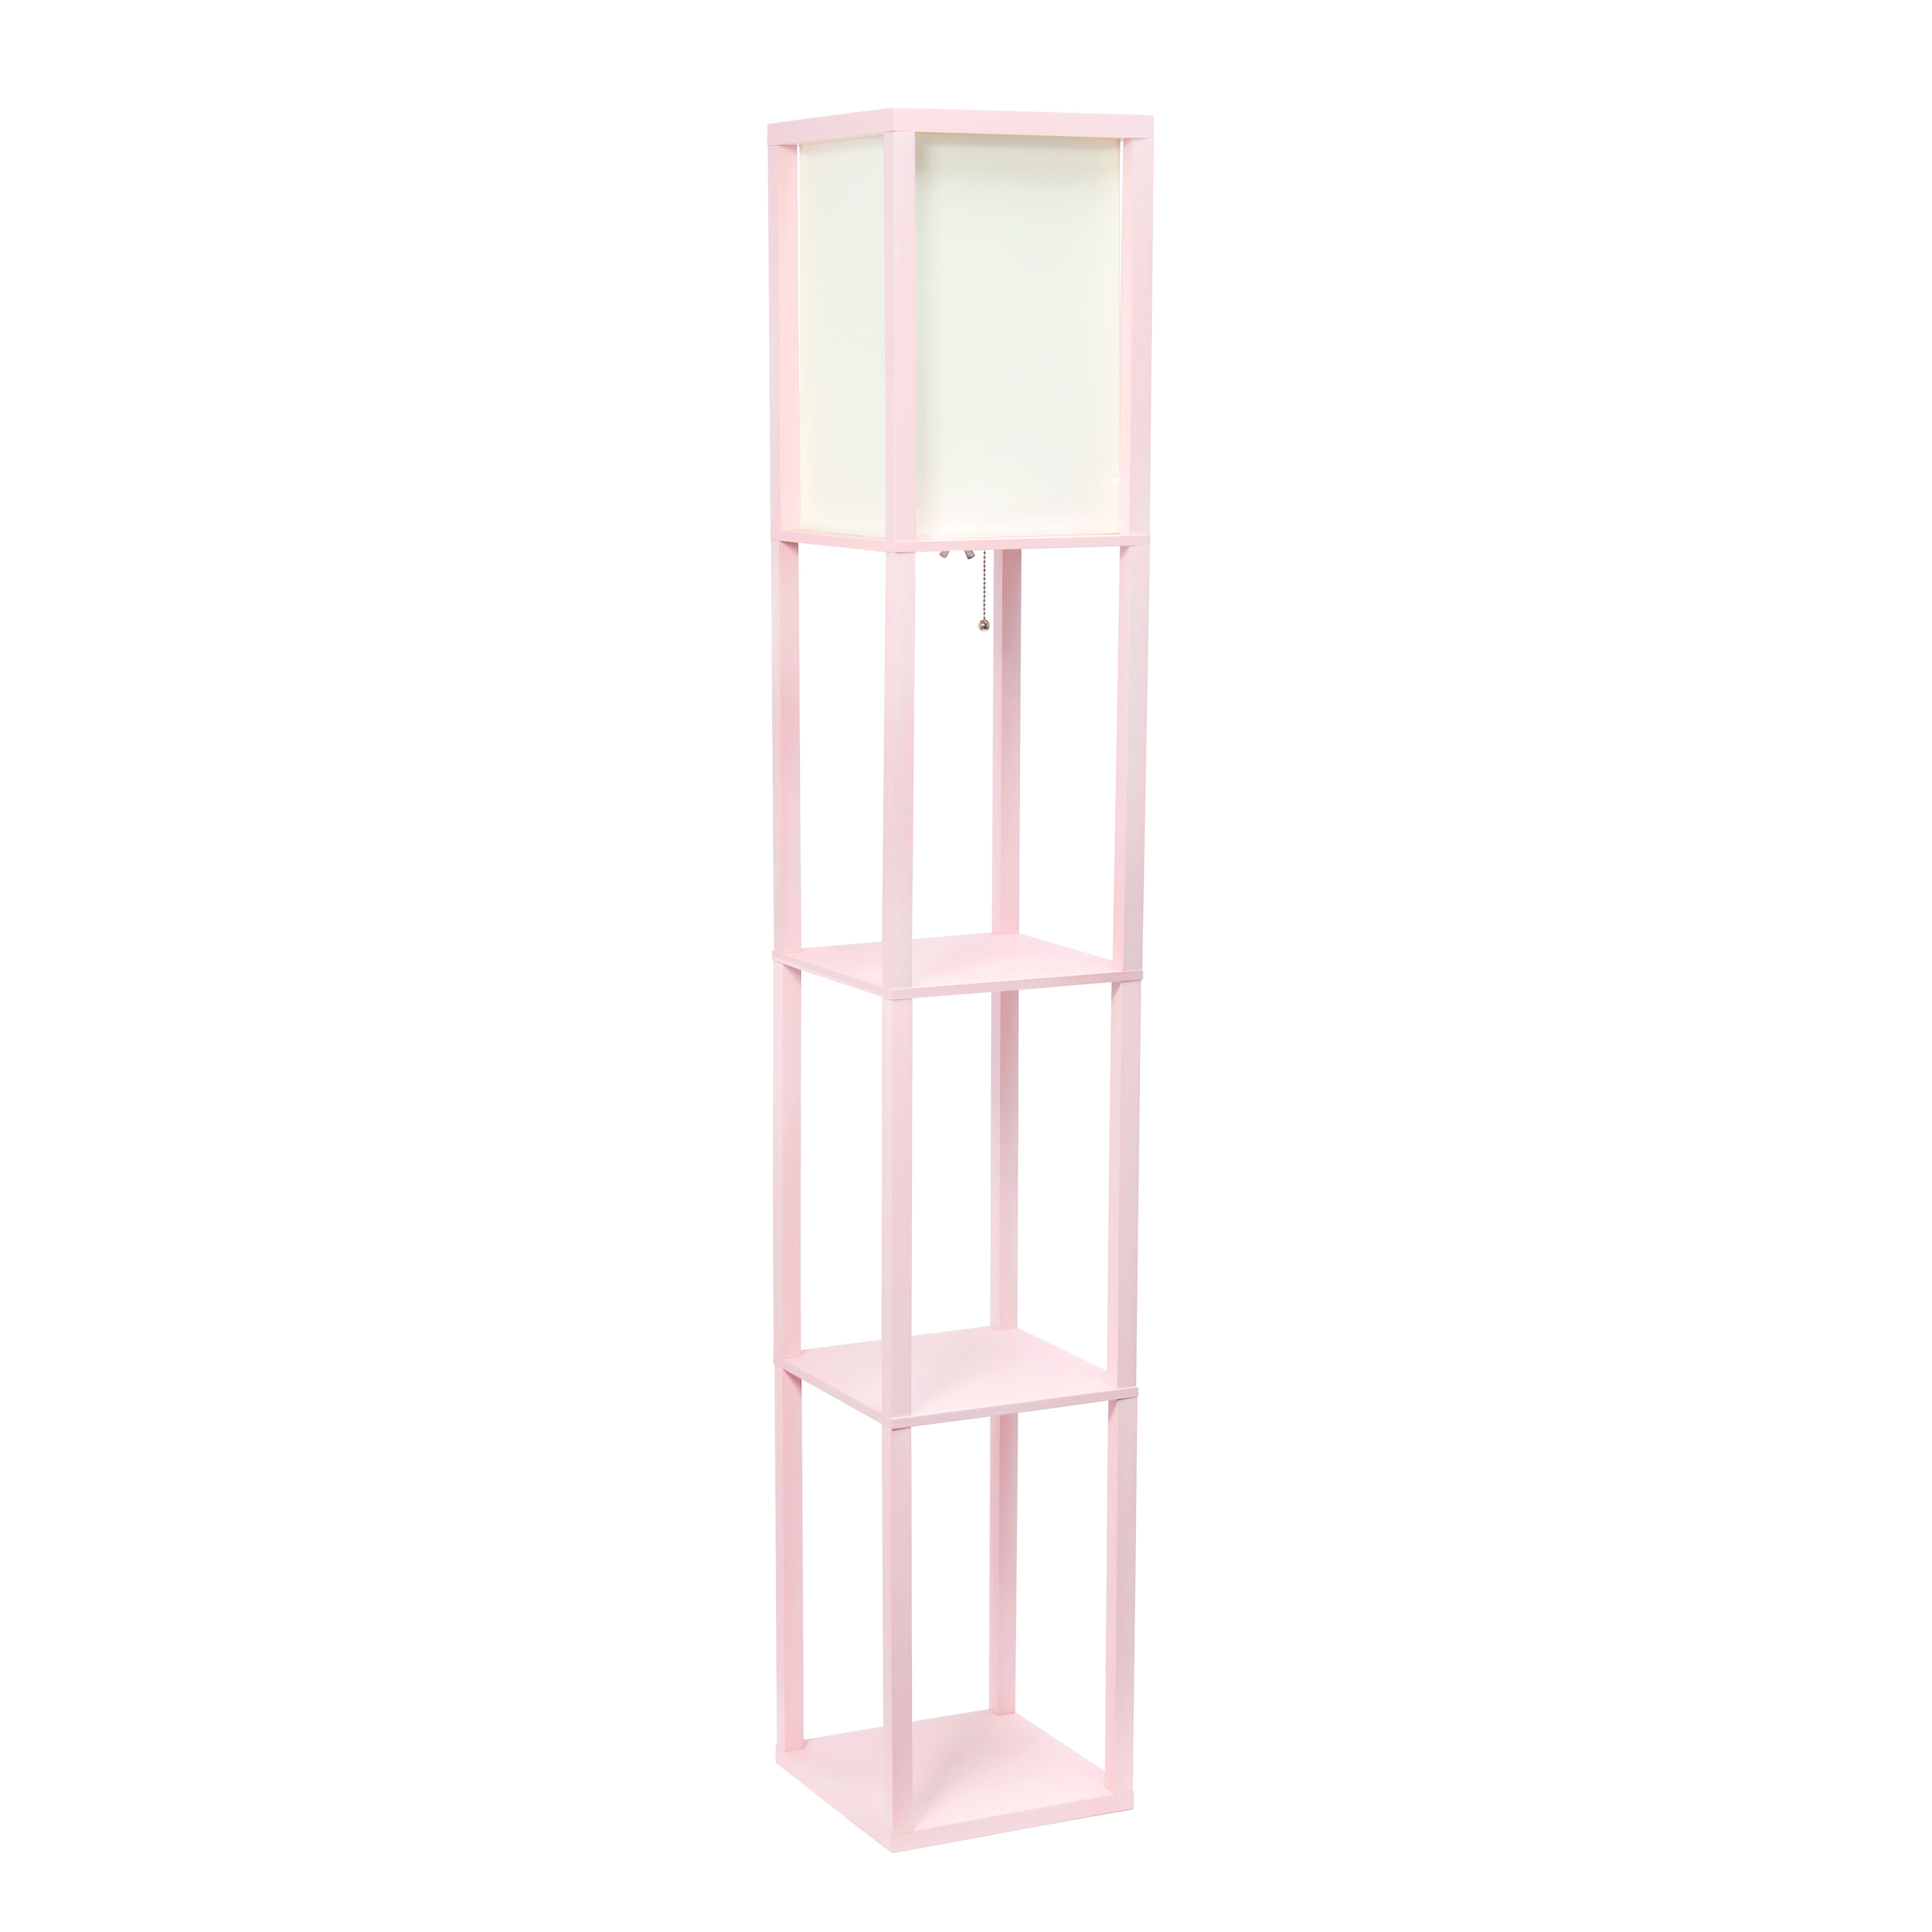 Simple Designs Floor Lamp Etagere Organizer Storage Shelf with Linen Shade, Light Pink